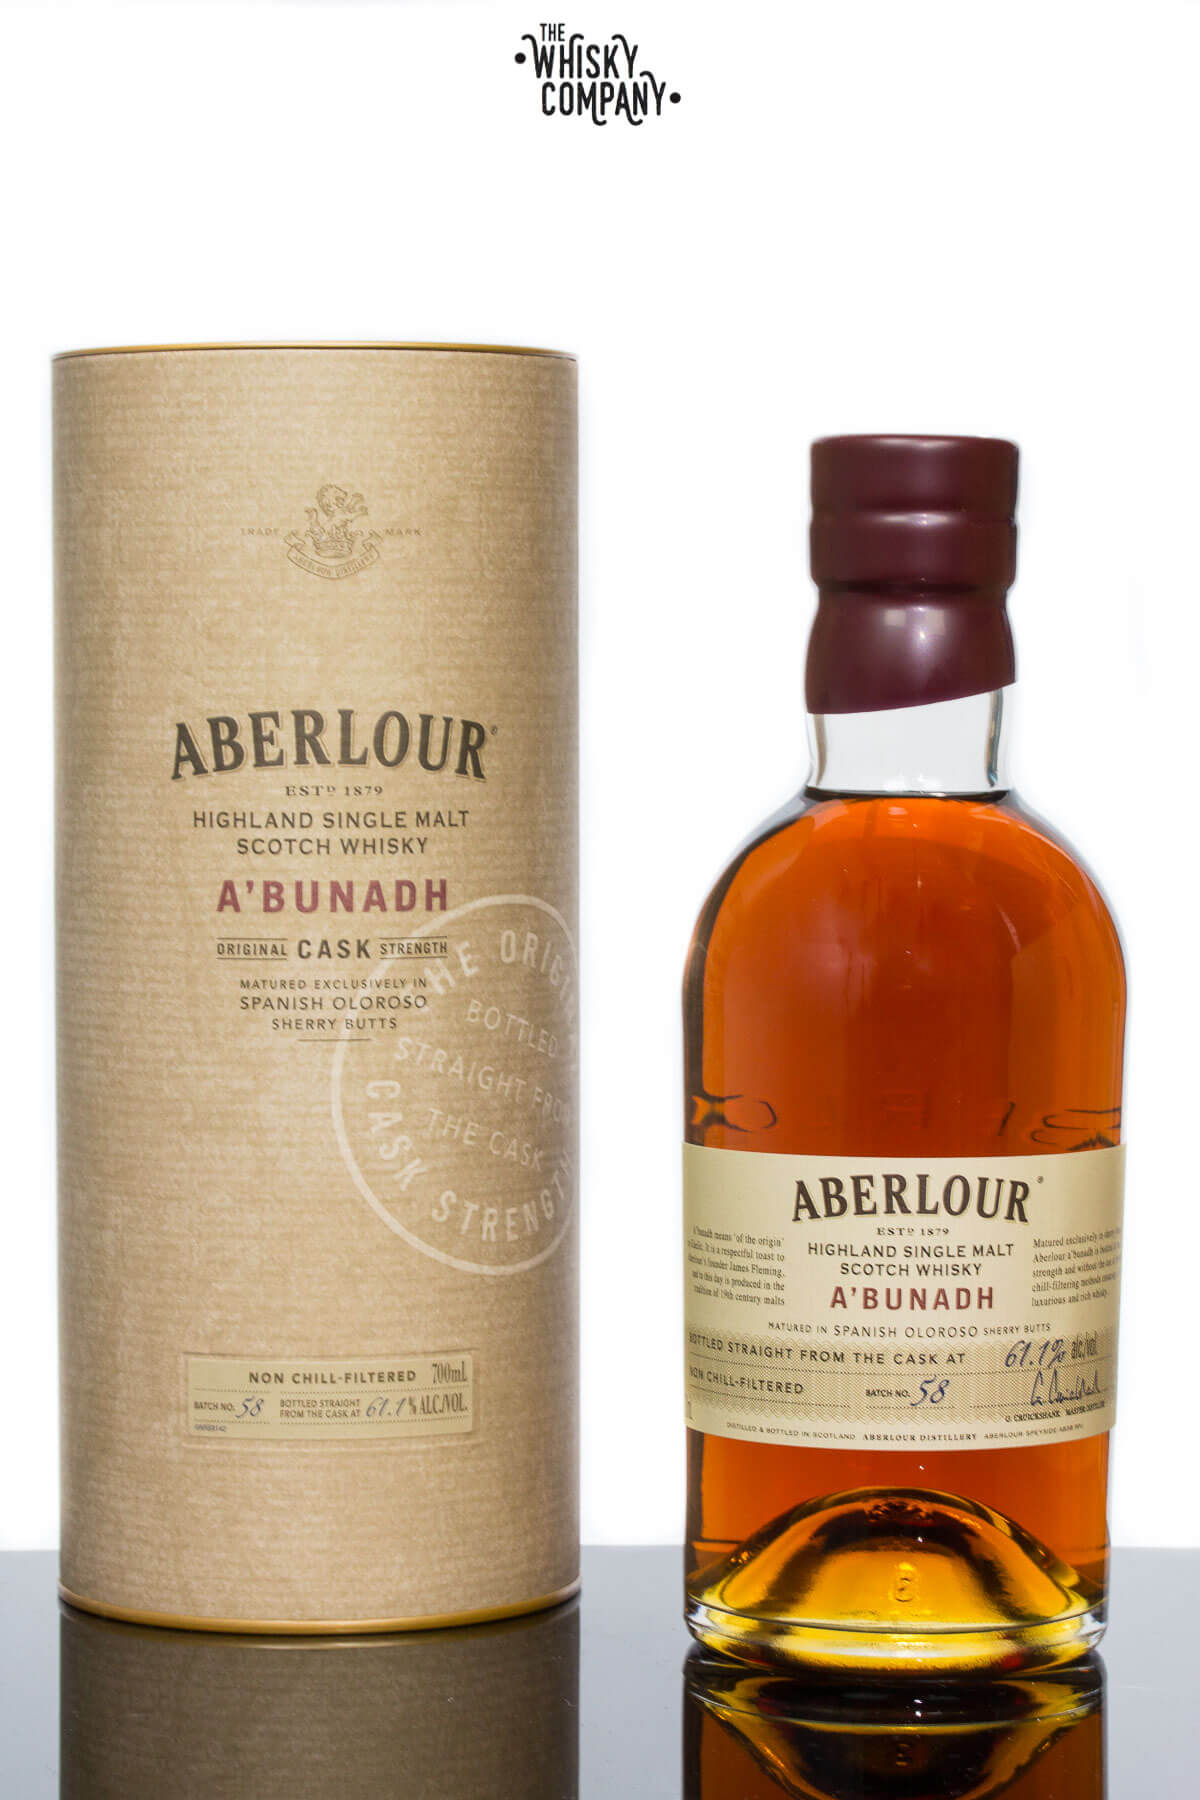 Aberlour A'Bunadh Highland Single Malt Scotch Whisky (700ml)